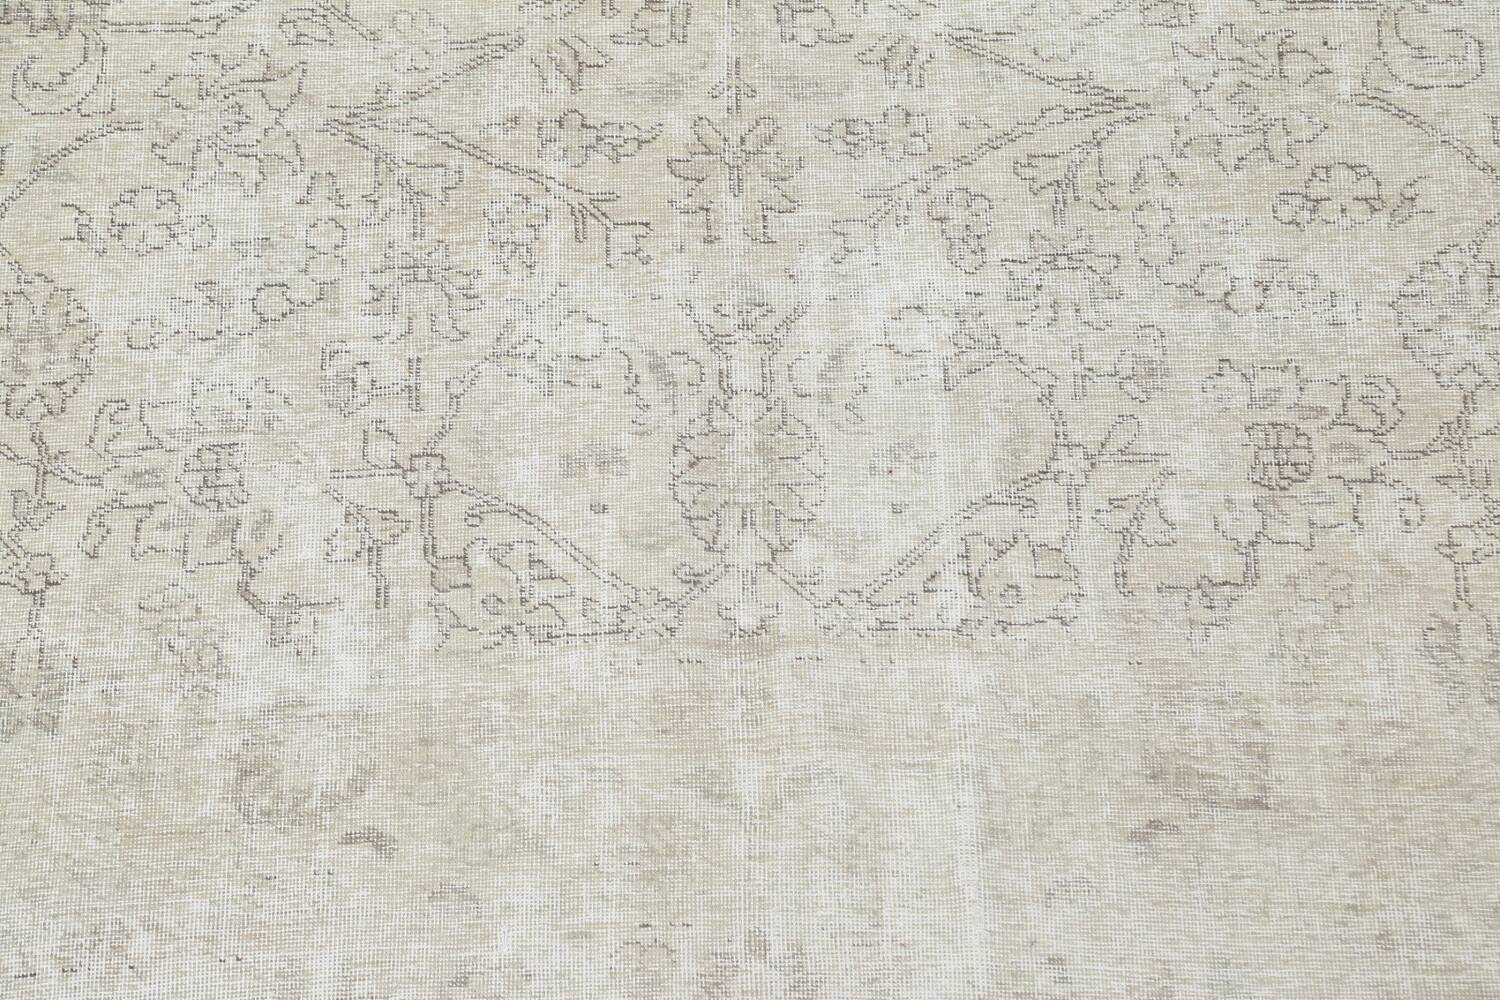 Muted Distressed Tabriz Persian Area Rug 9x11 image 5